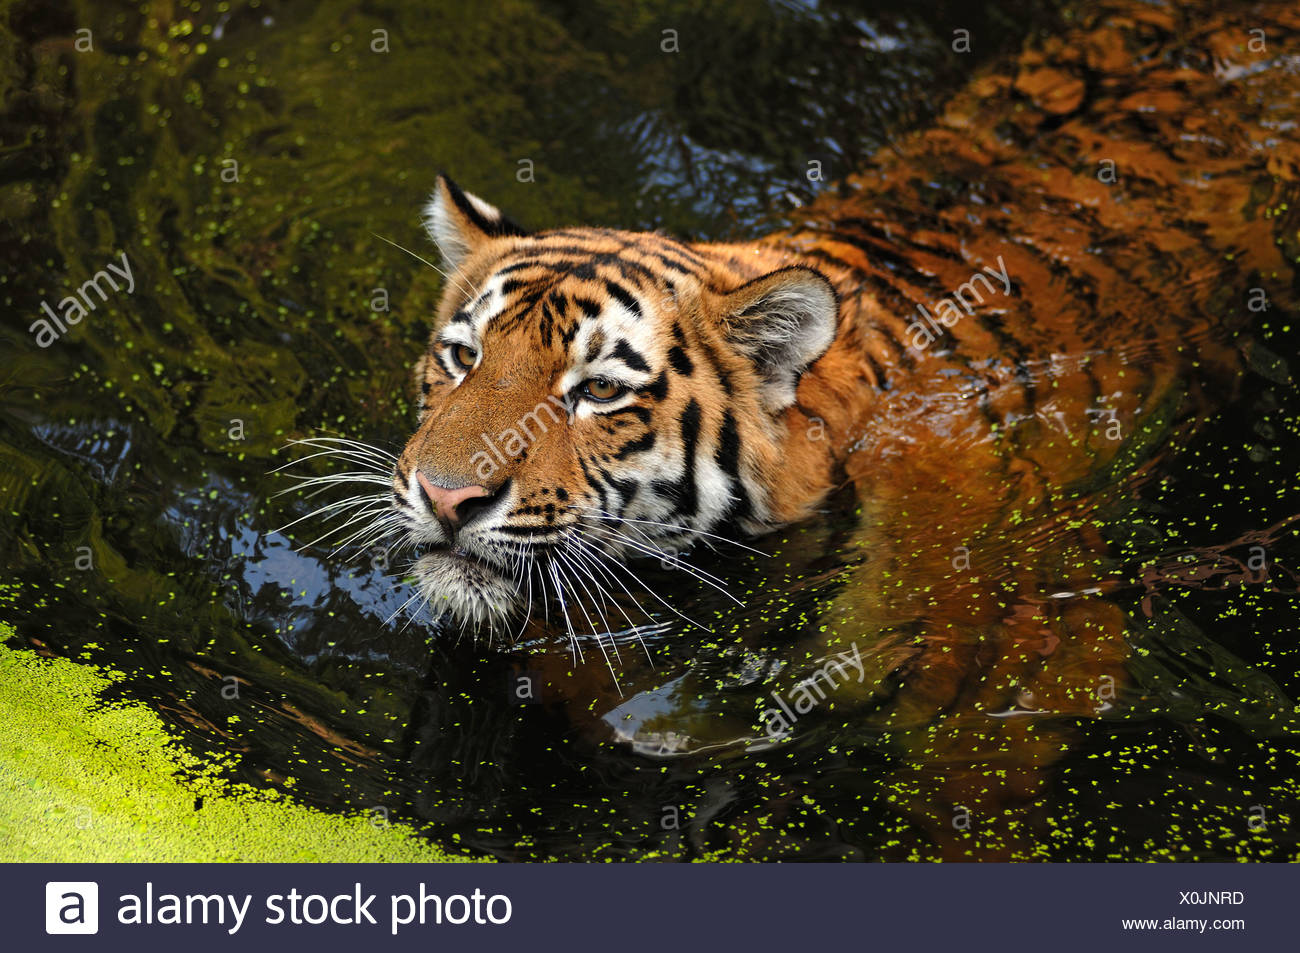 Siberian Tiger (Panthera tigris altaica), swimming in a moat, Tiergarten Nuernberg, Nuremburg Zoo, Nuremburg, Middle Franconia Stock Photo